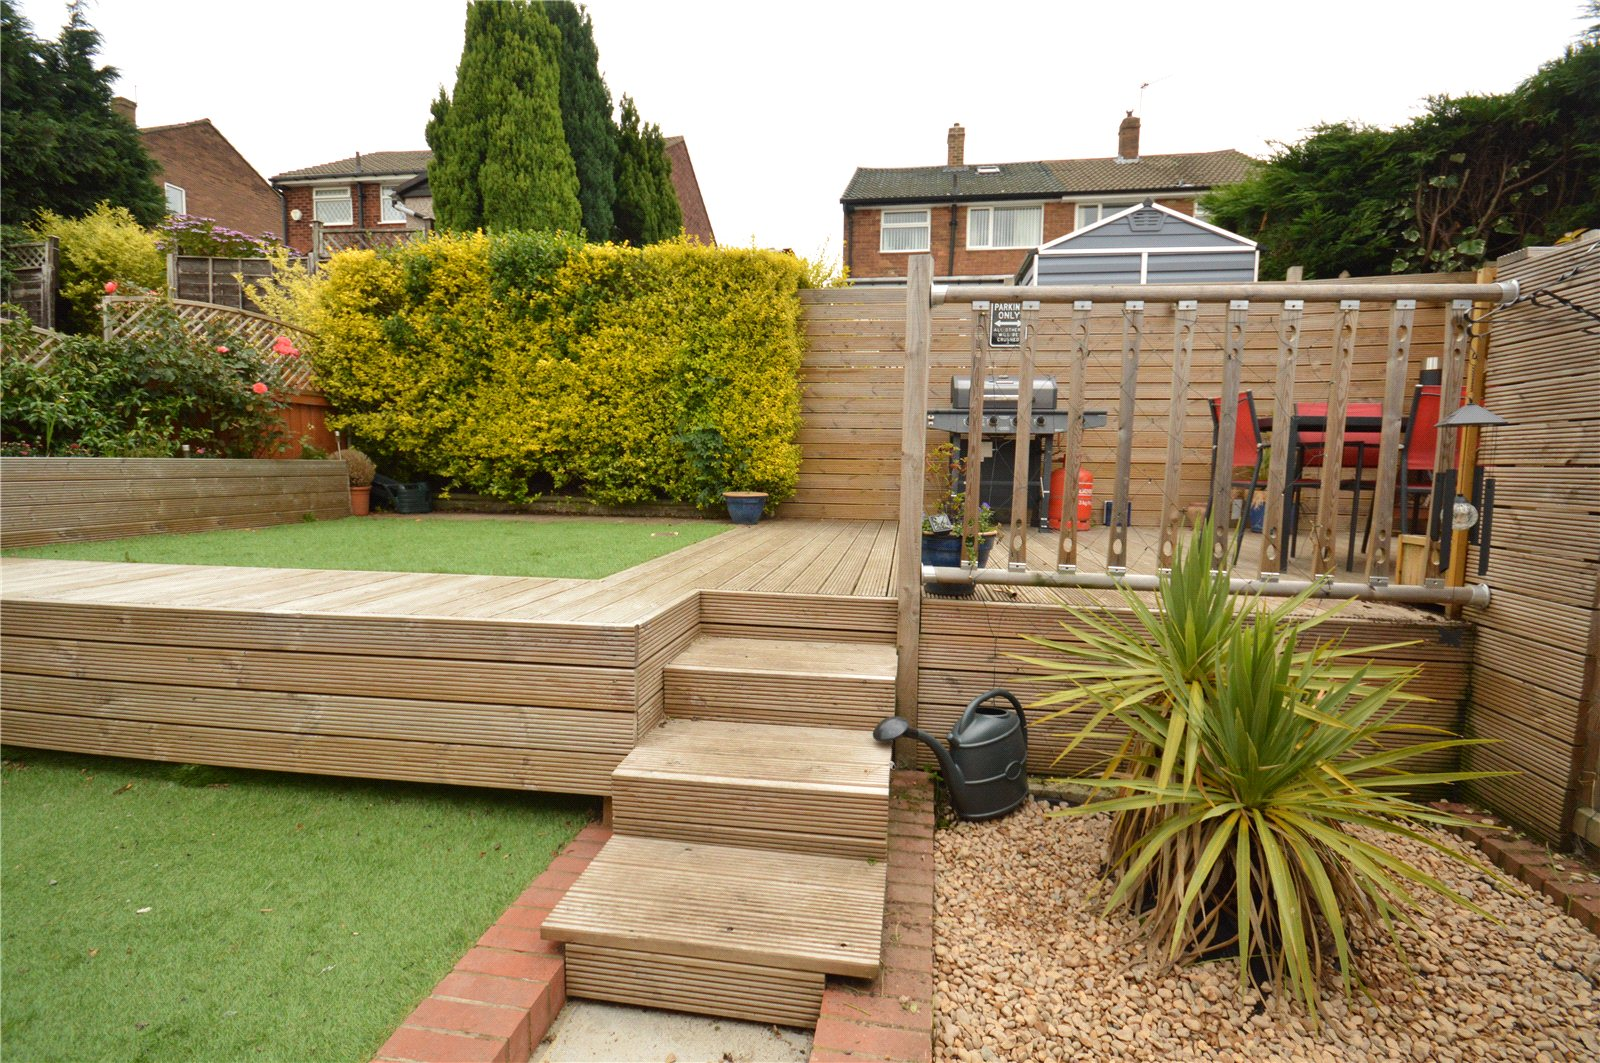 property for sale in Horsforth, outdoor landscaped garden with bbq area